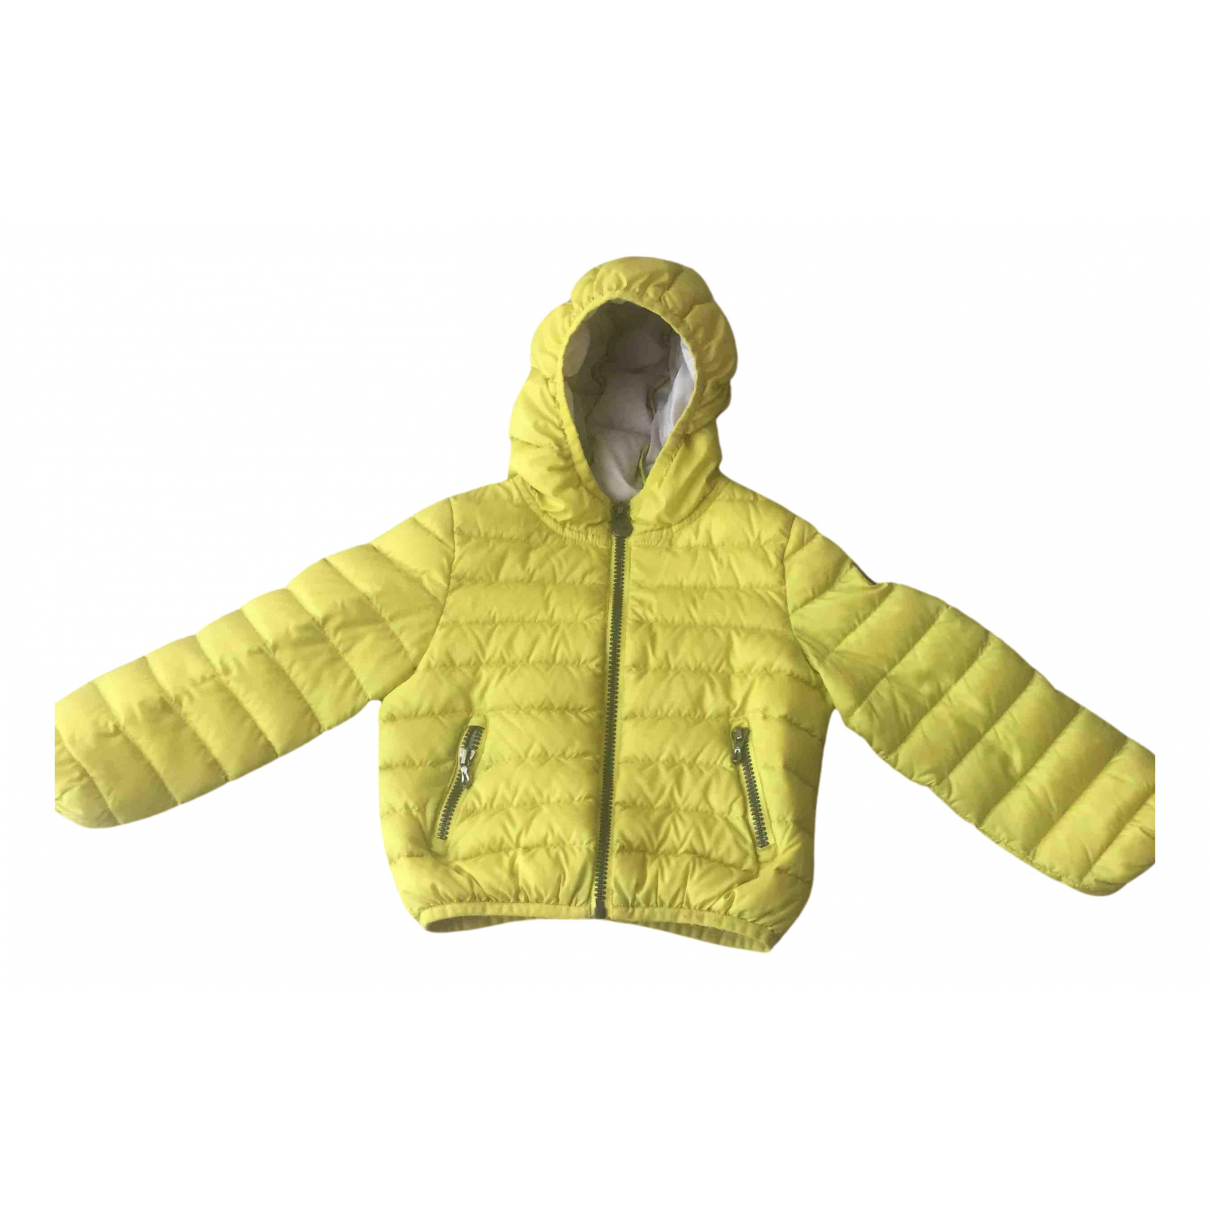 Colmar N Yellow jacket & coat for Kids 2 years - up to 86cm FR